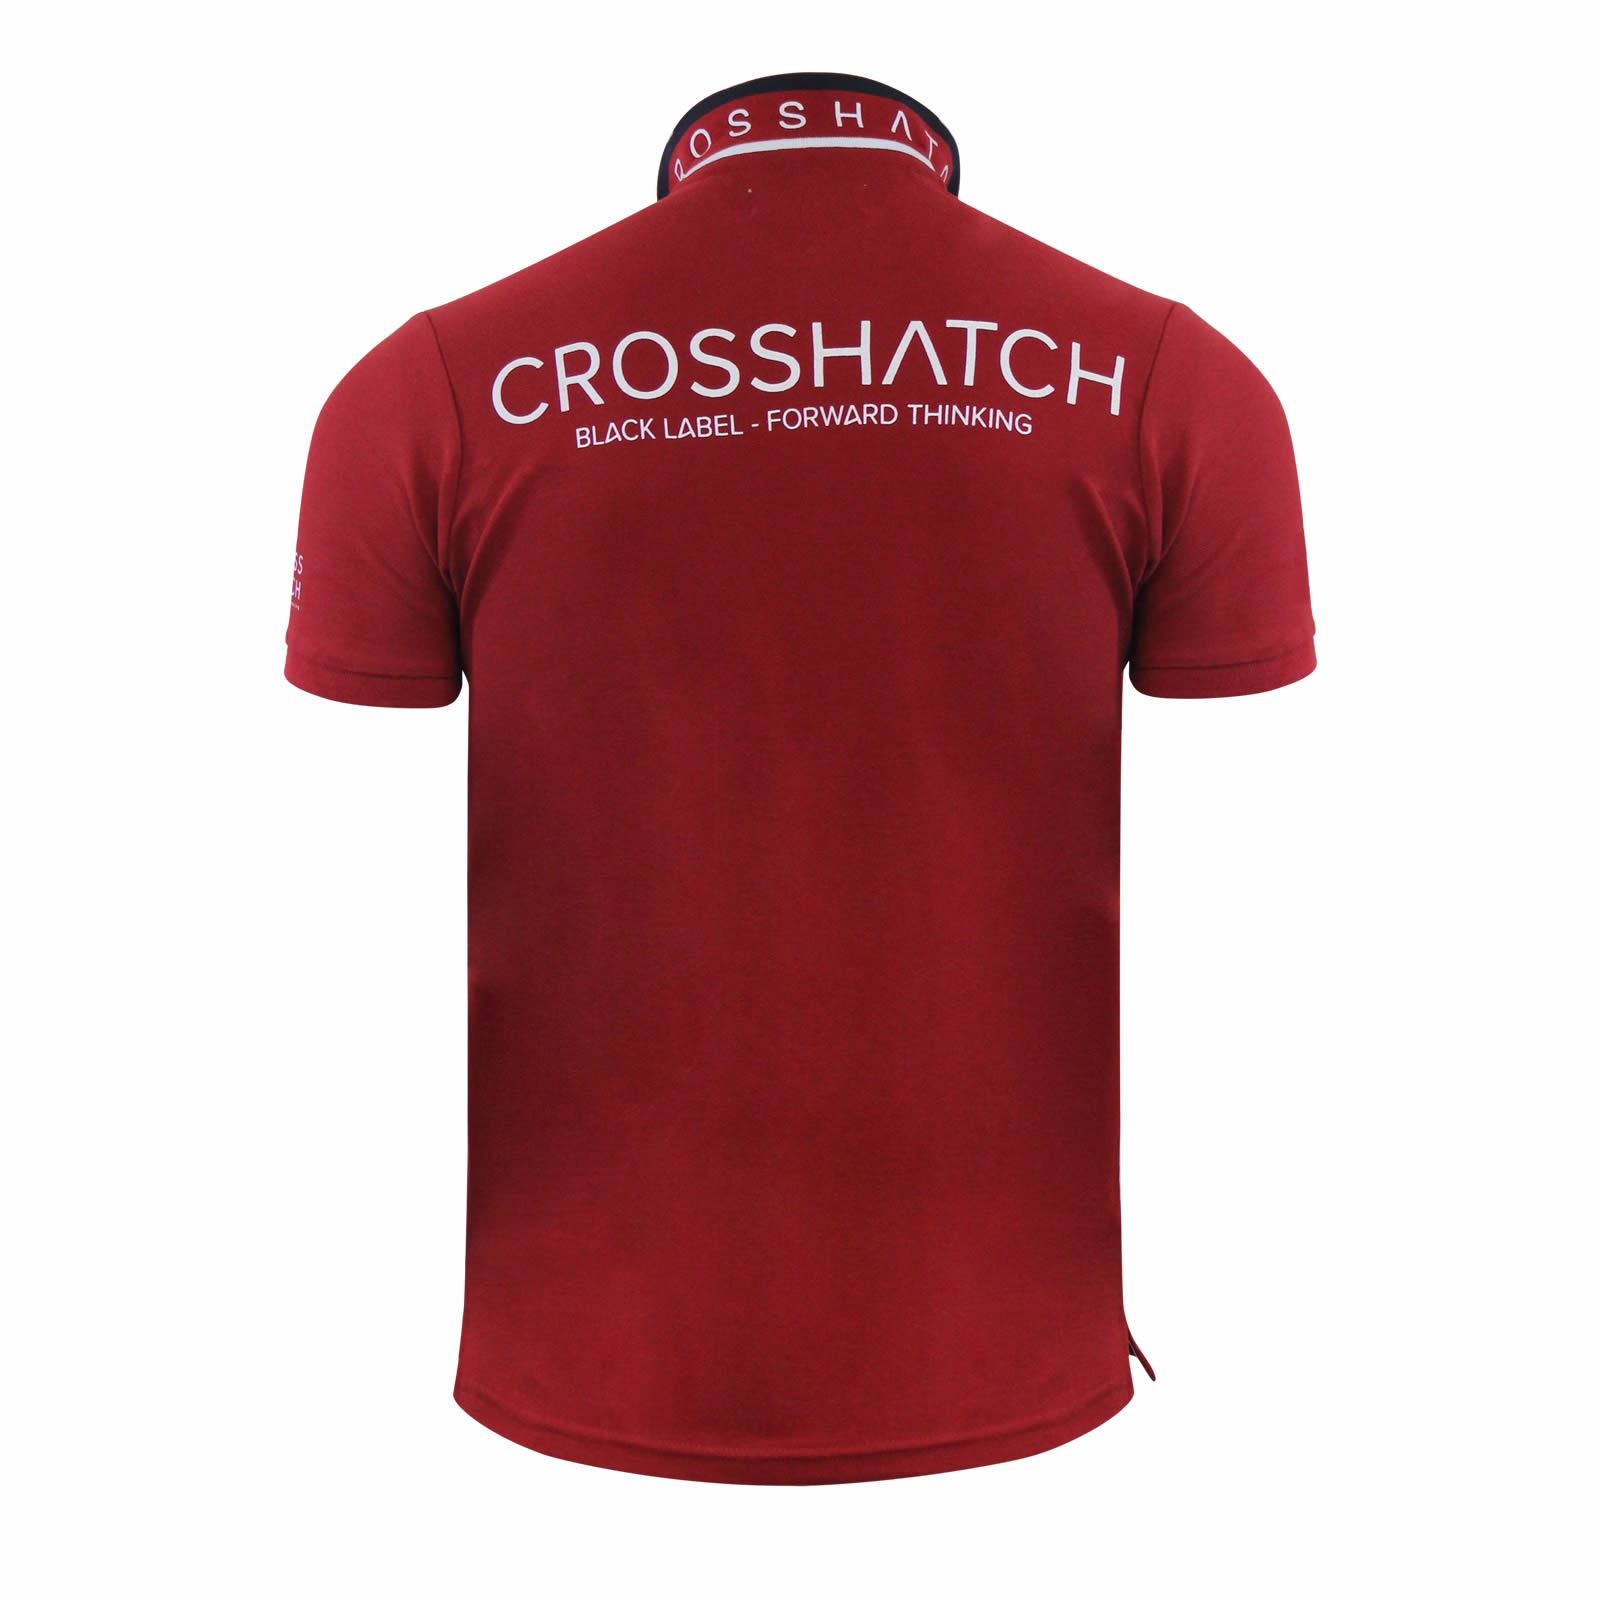 Crosshatch-Mens-Polo-T-Shirt-Pique-Polo-Cotton-Collared-Short-Sleeve-T-Shirt thumbnail 9